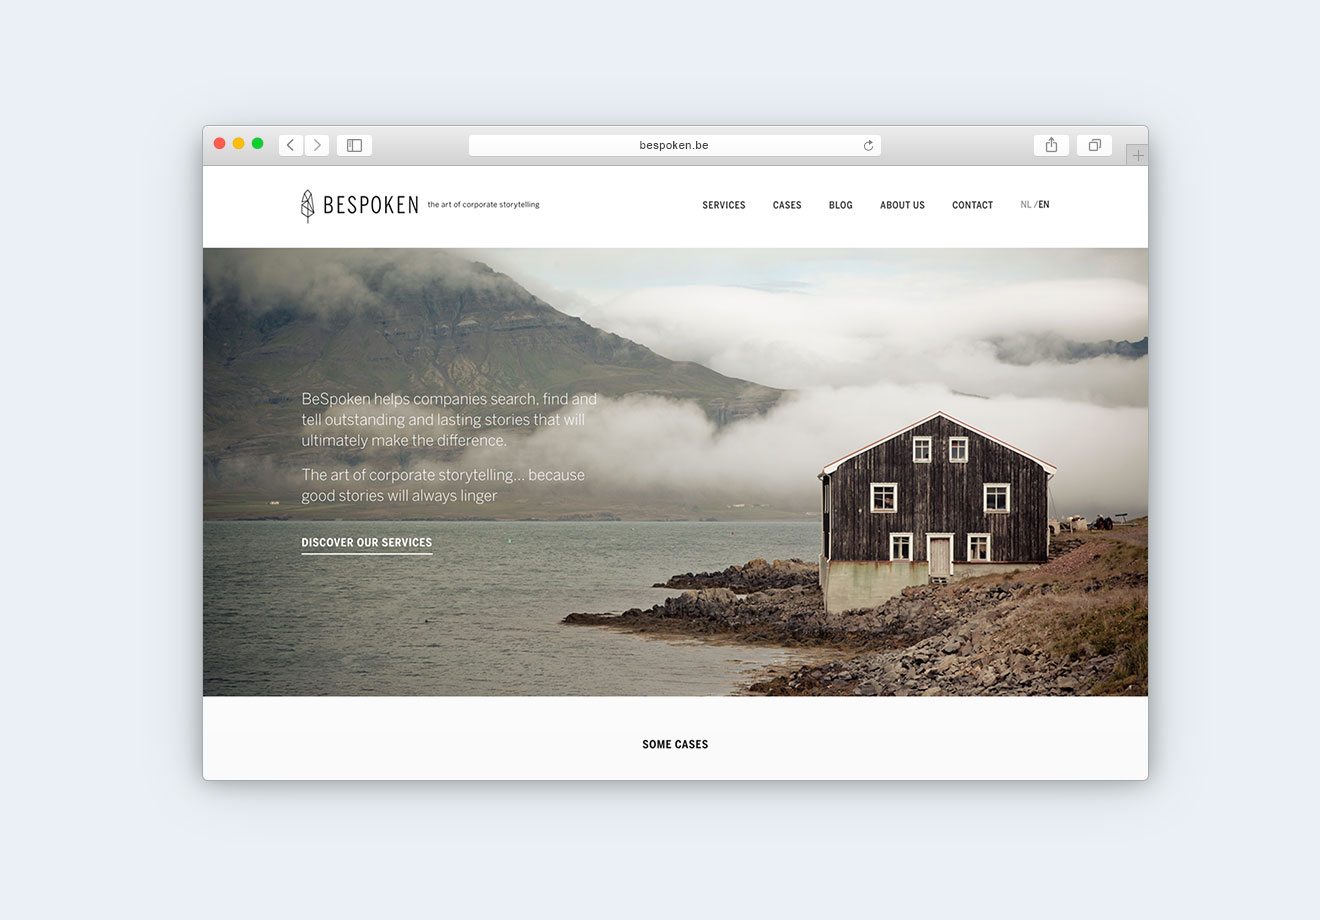 project-bespoken-image_1